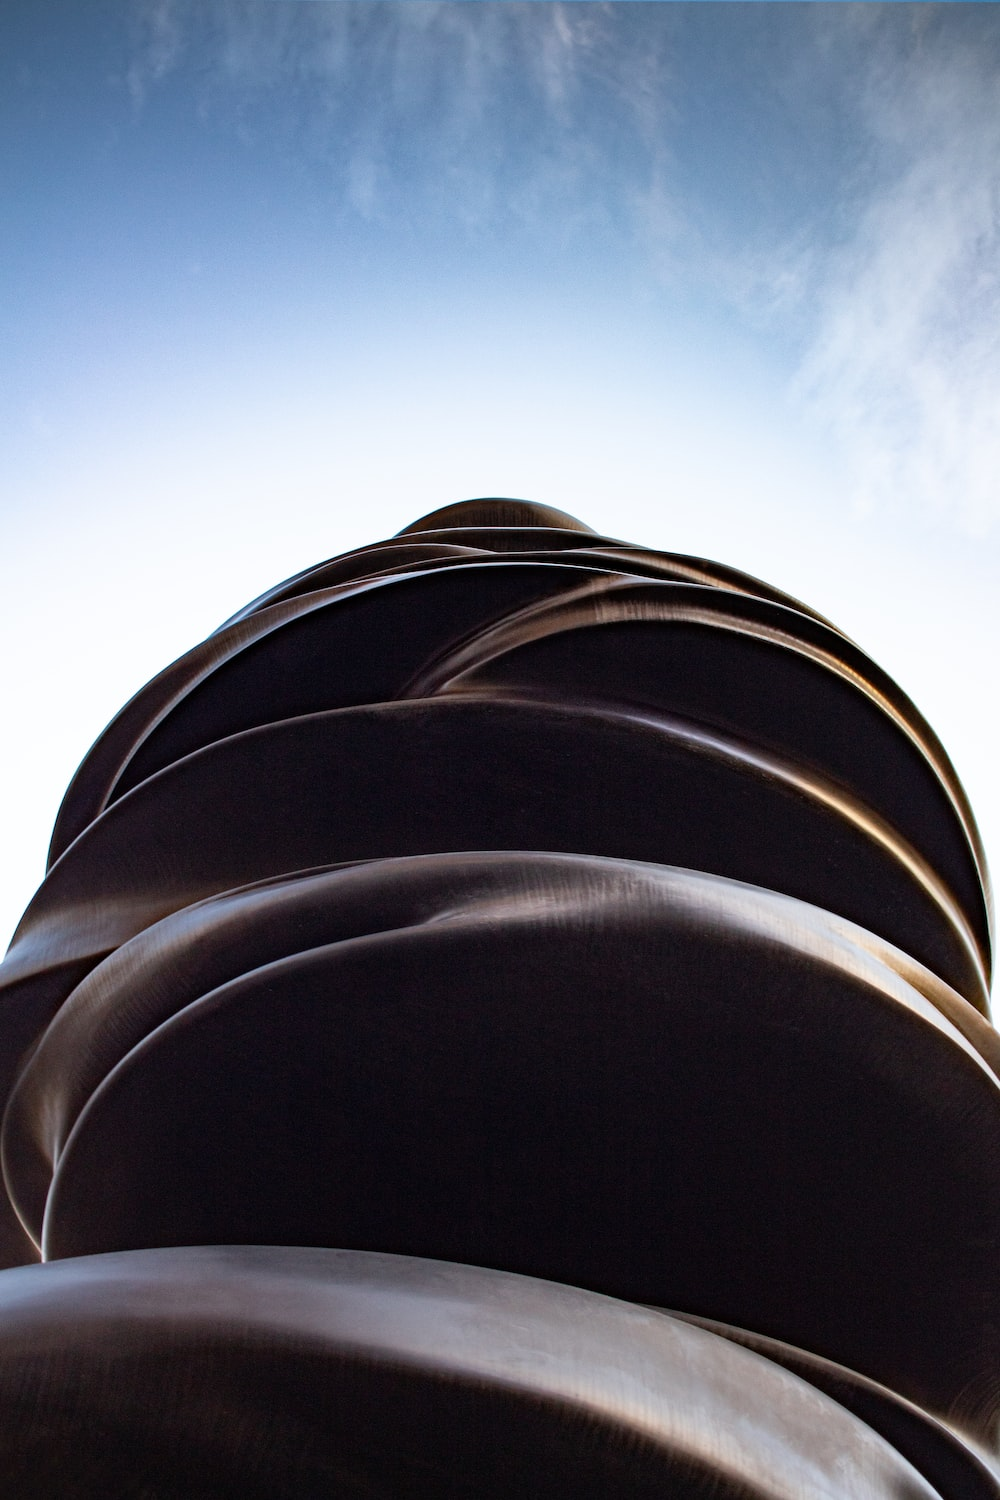 low-angle photography of brown structure under white and blue sky